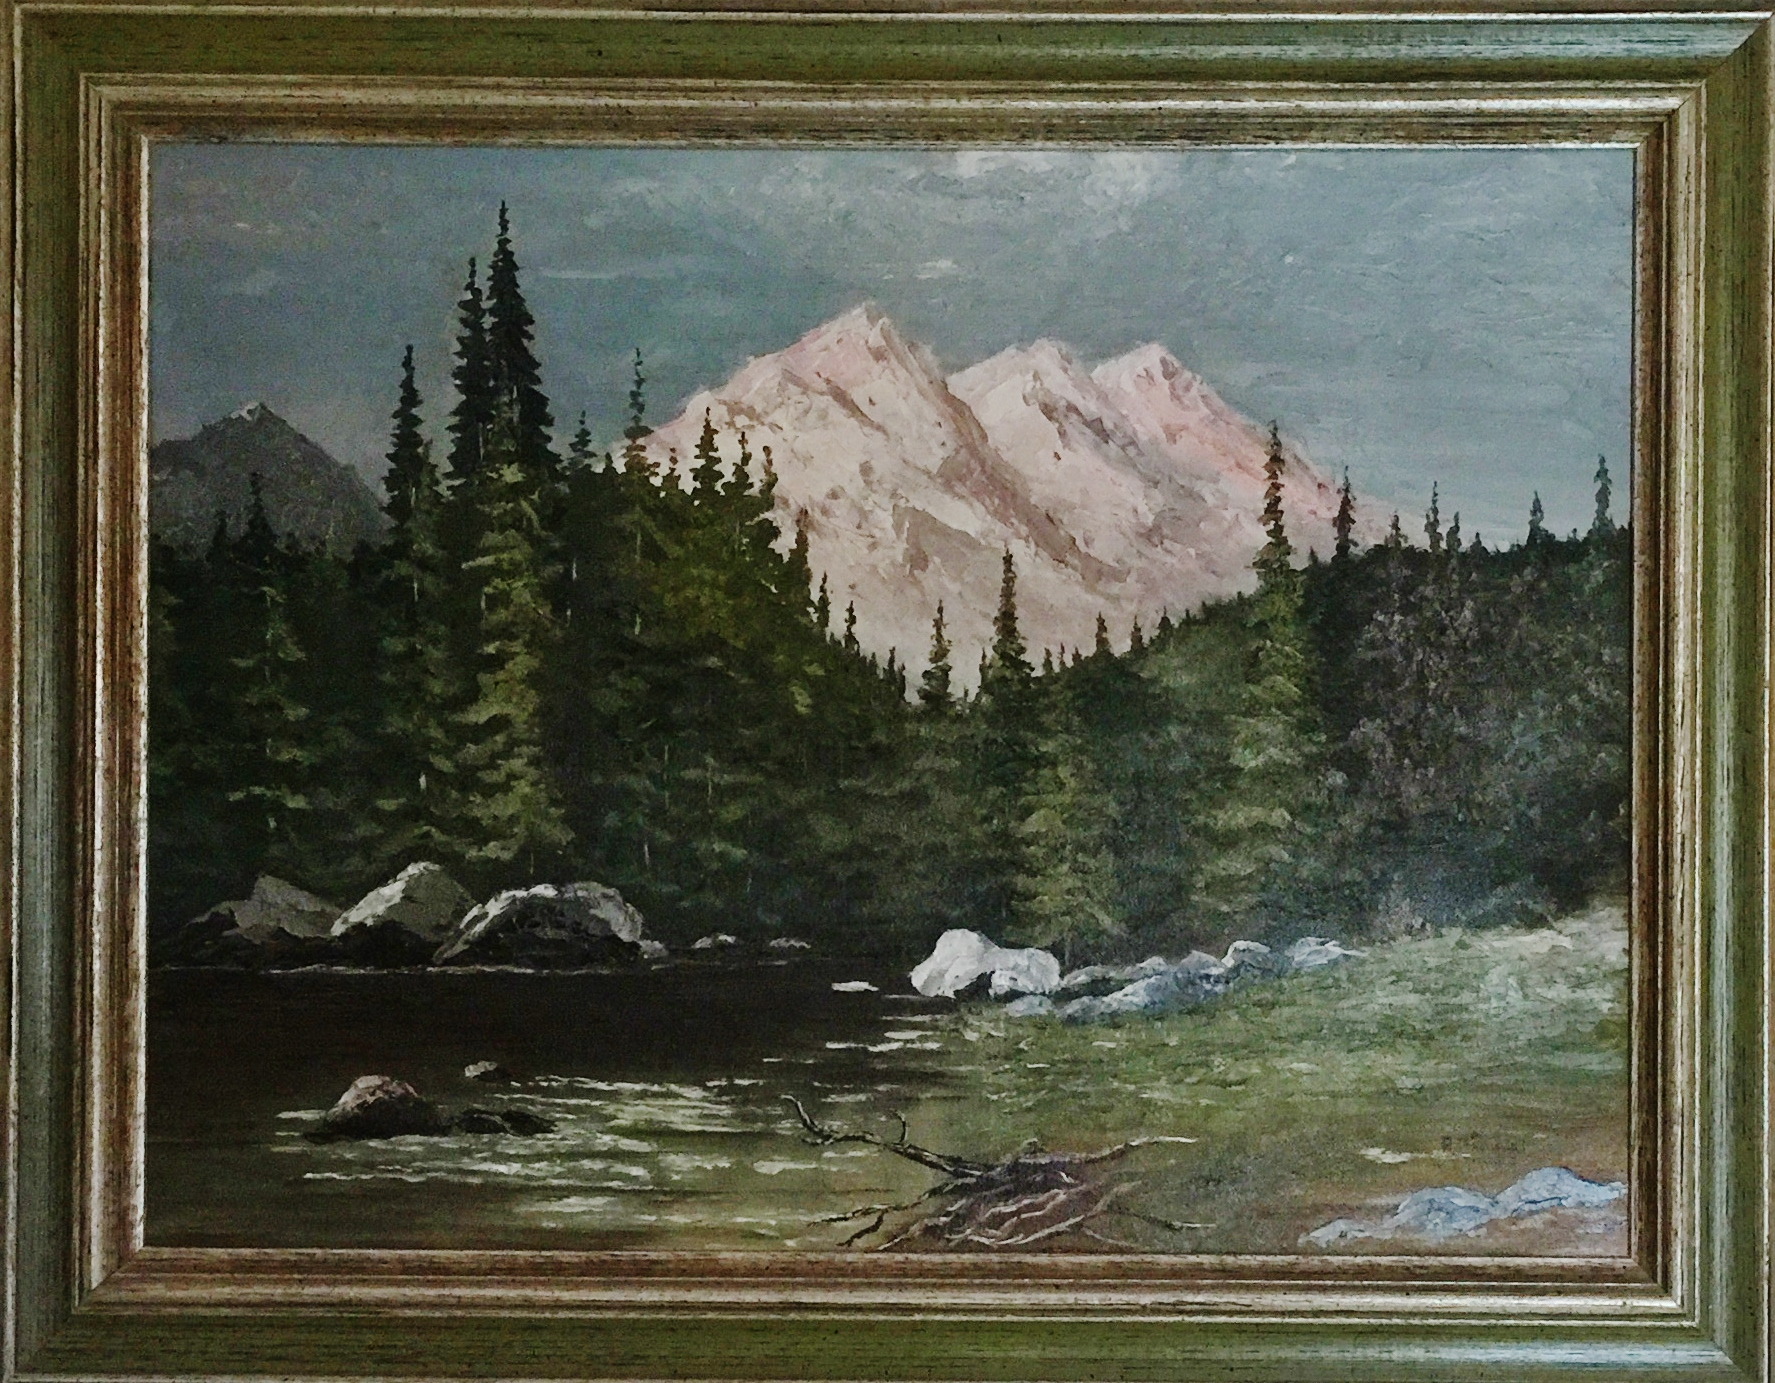 Oil painting by Bob Broadbent